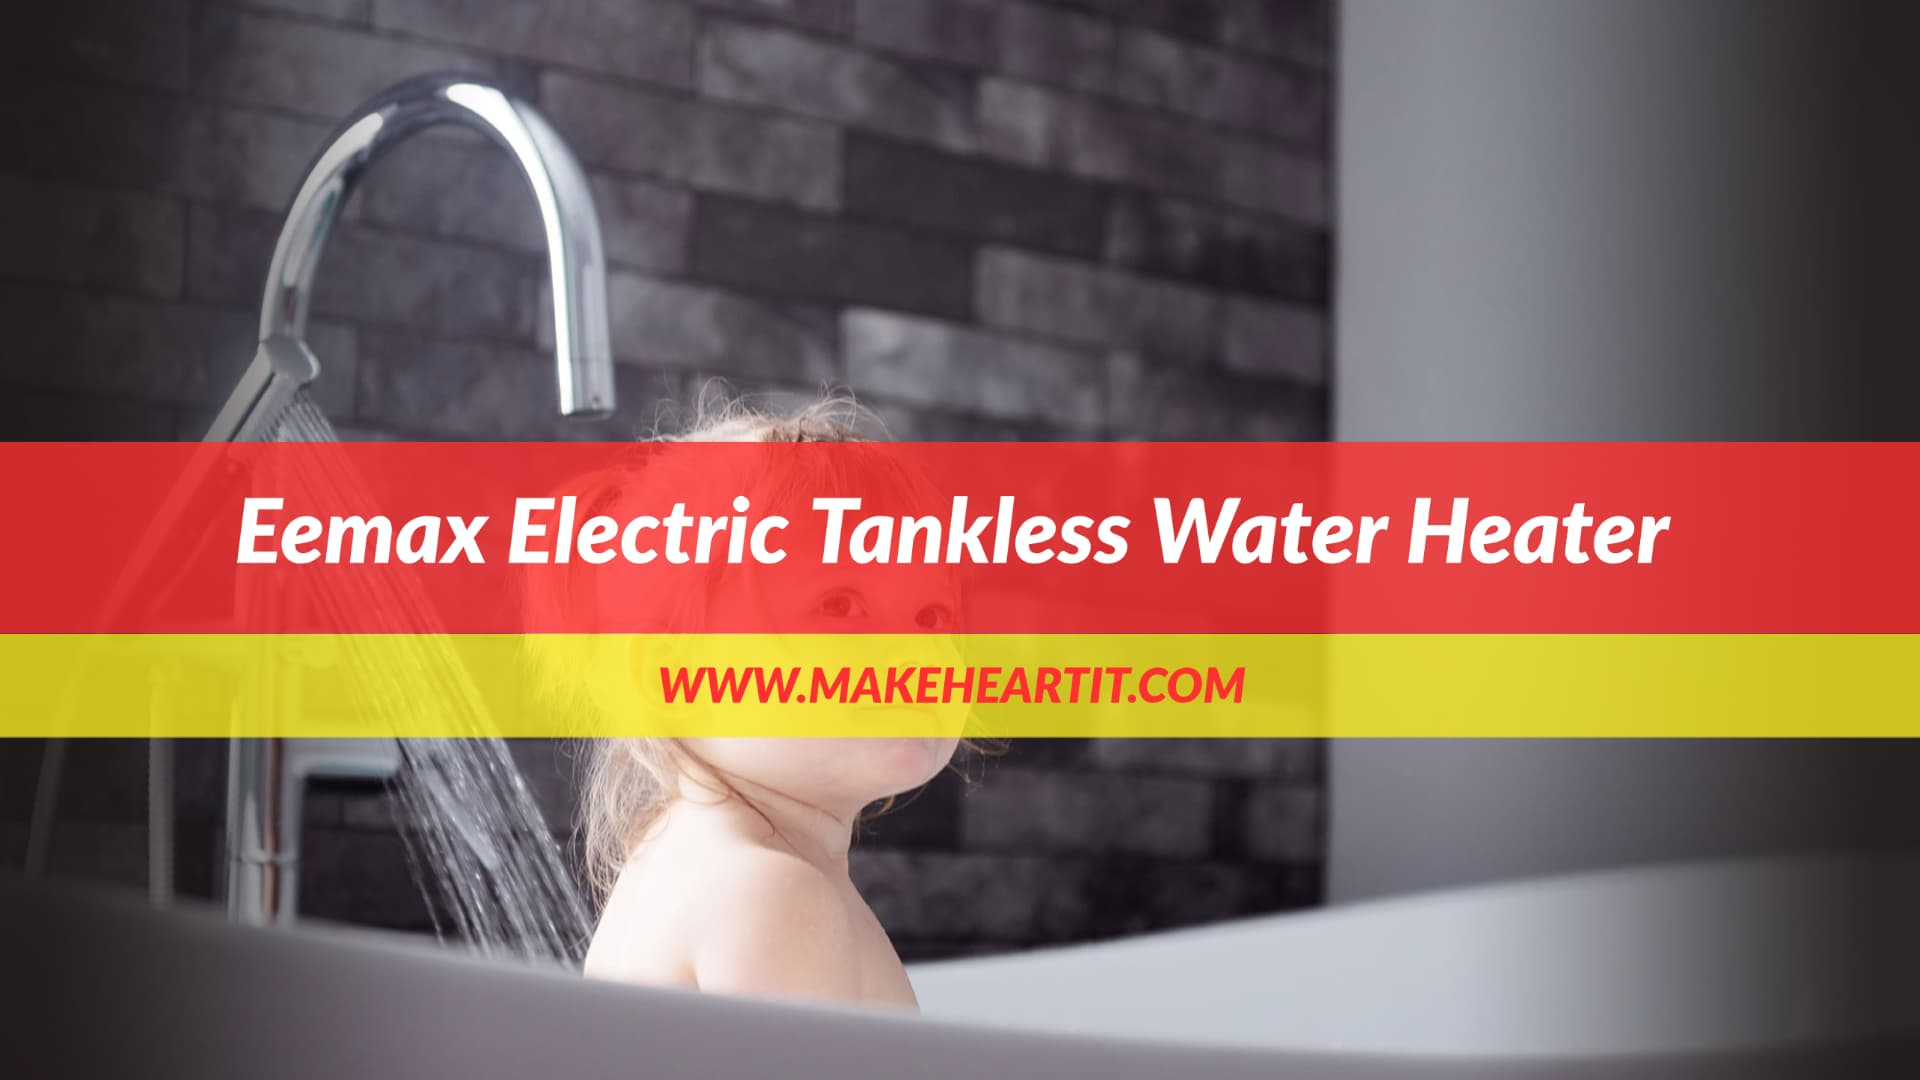 best electric tankless water heater for rv, Eemax, Eemax Electric Tankless Water Heater, Eemax tankless water heater, Eemax tankless water heater manual, Eemax water Heater, Electric Tankless Water Heater, electric tankless water heater installation, how to install an electric tankless water heater, tankless electric water heater, Tankless Water Heater, tankless water heater electric, Top 10 Best Eemax Electric Tankless Water Heater Reviews